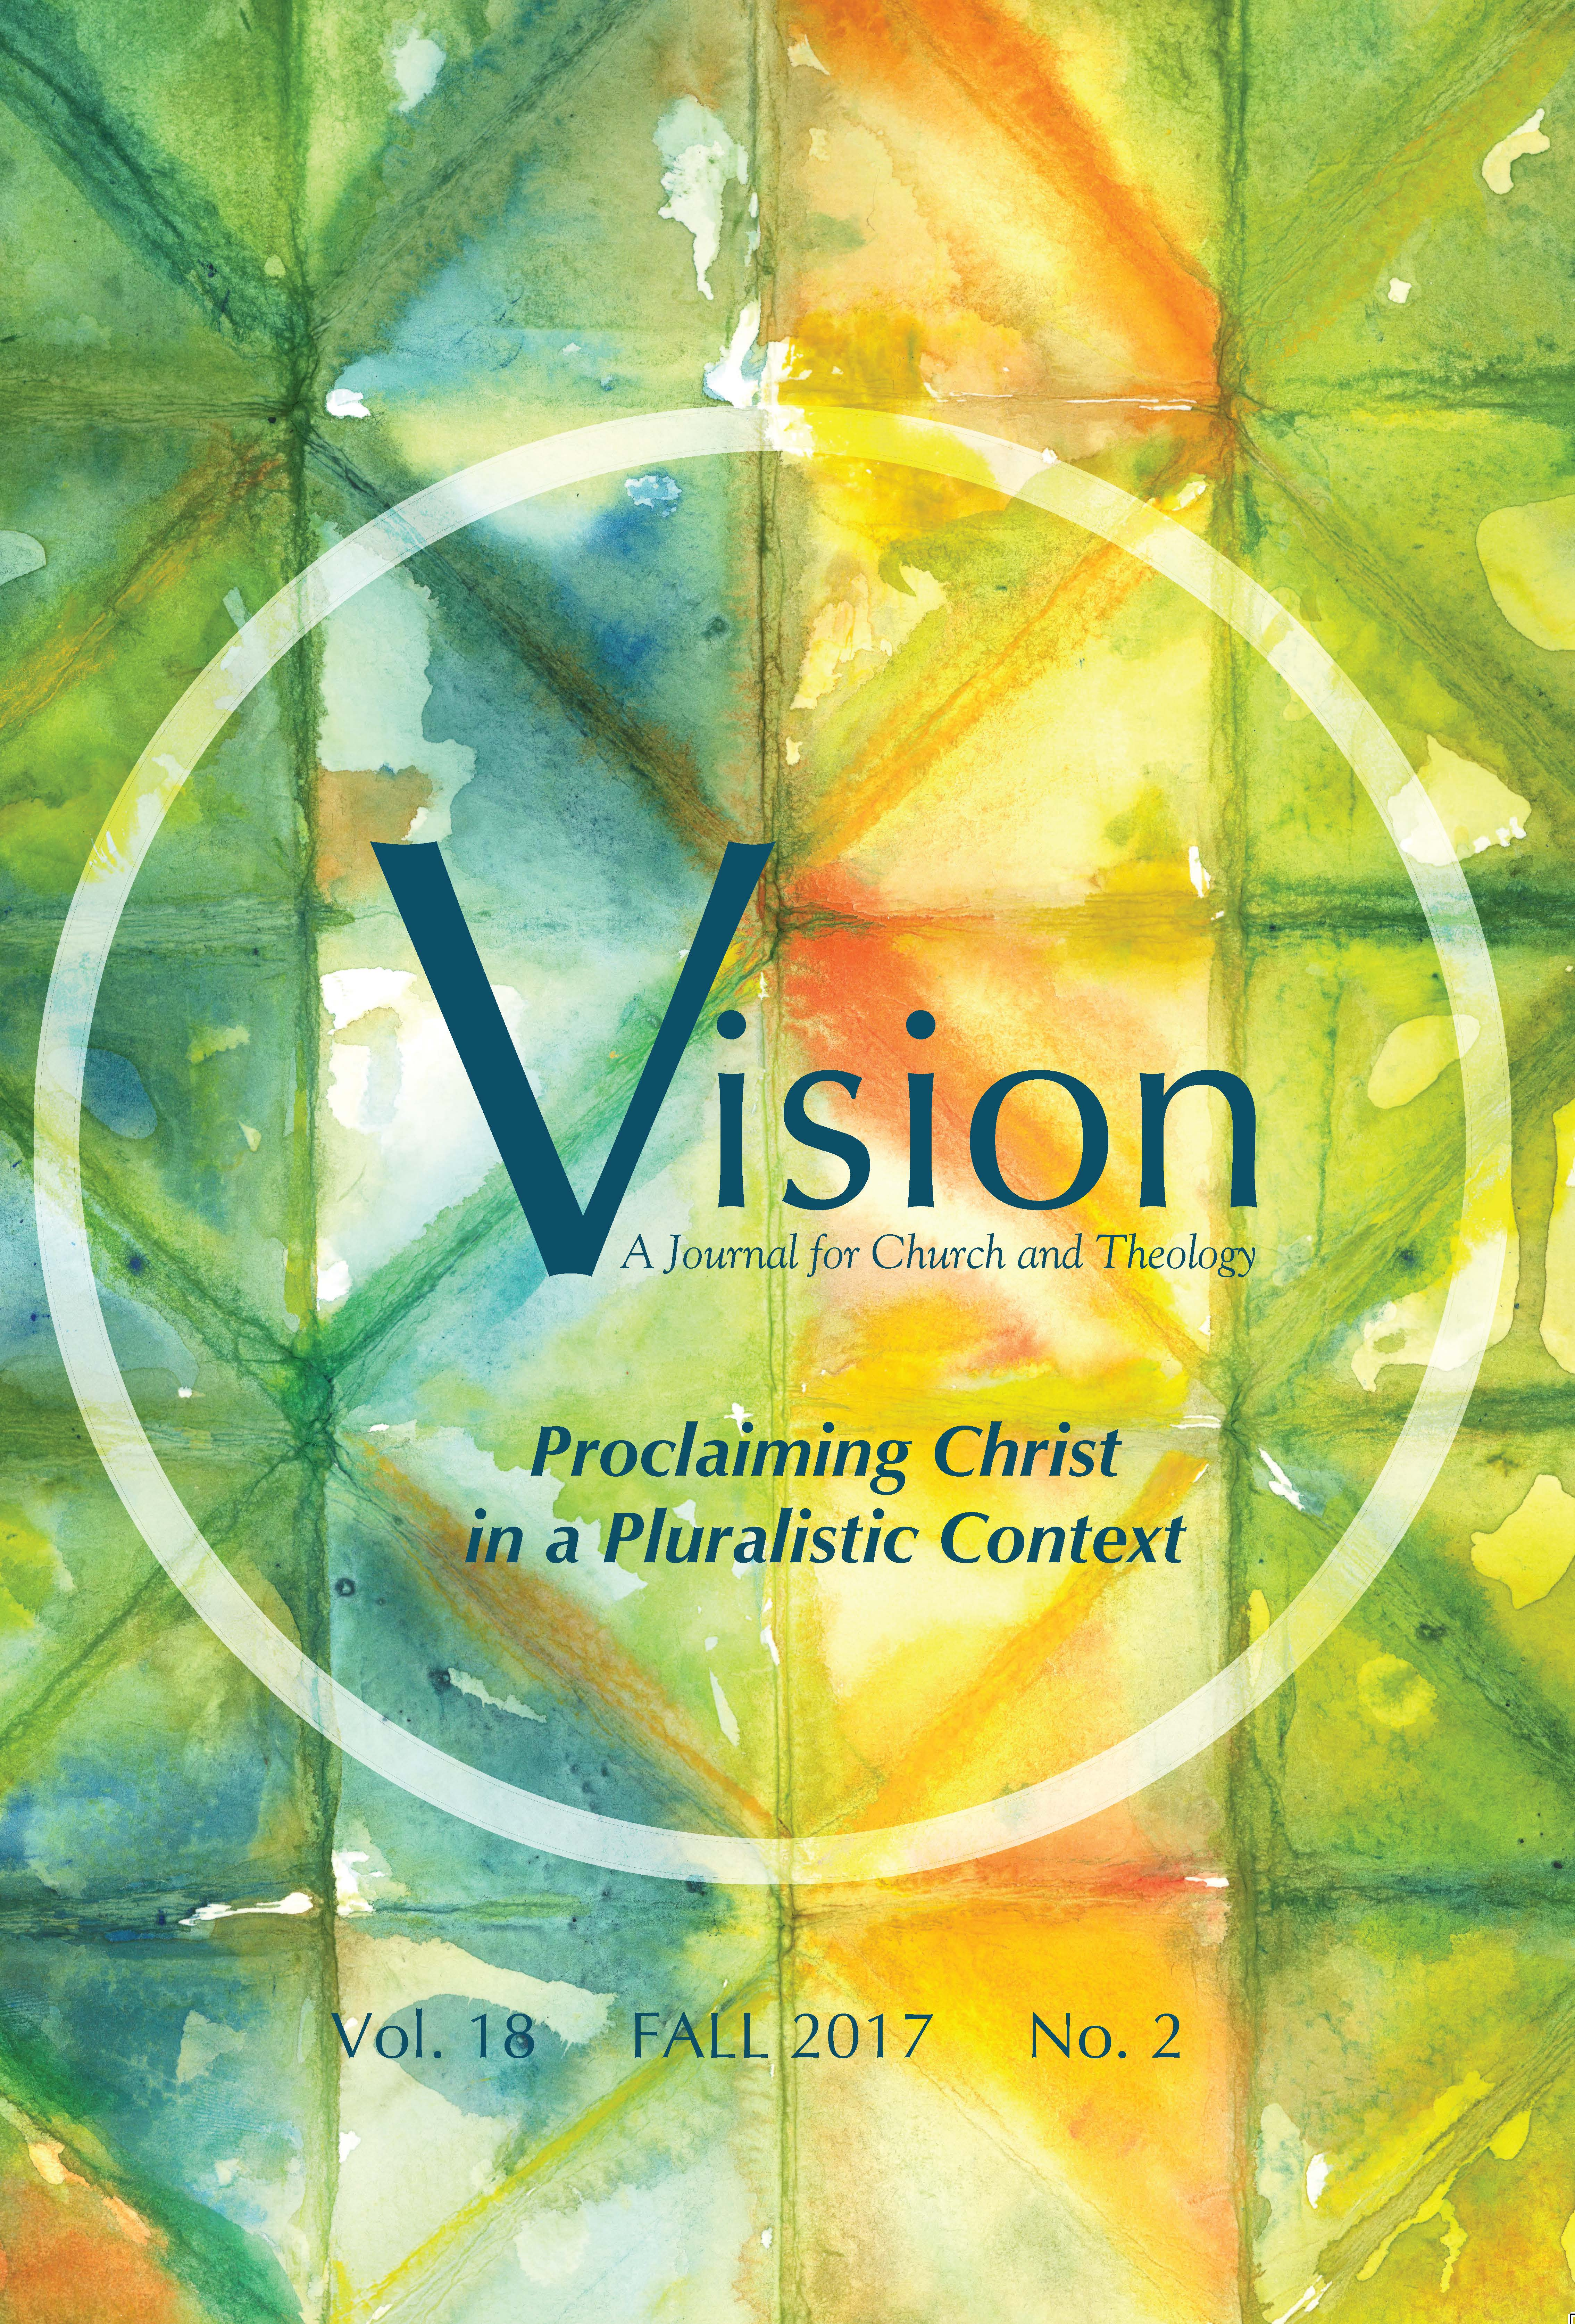 vision cover proclaiming christ in a pluralistic context